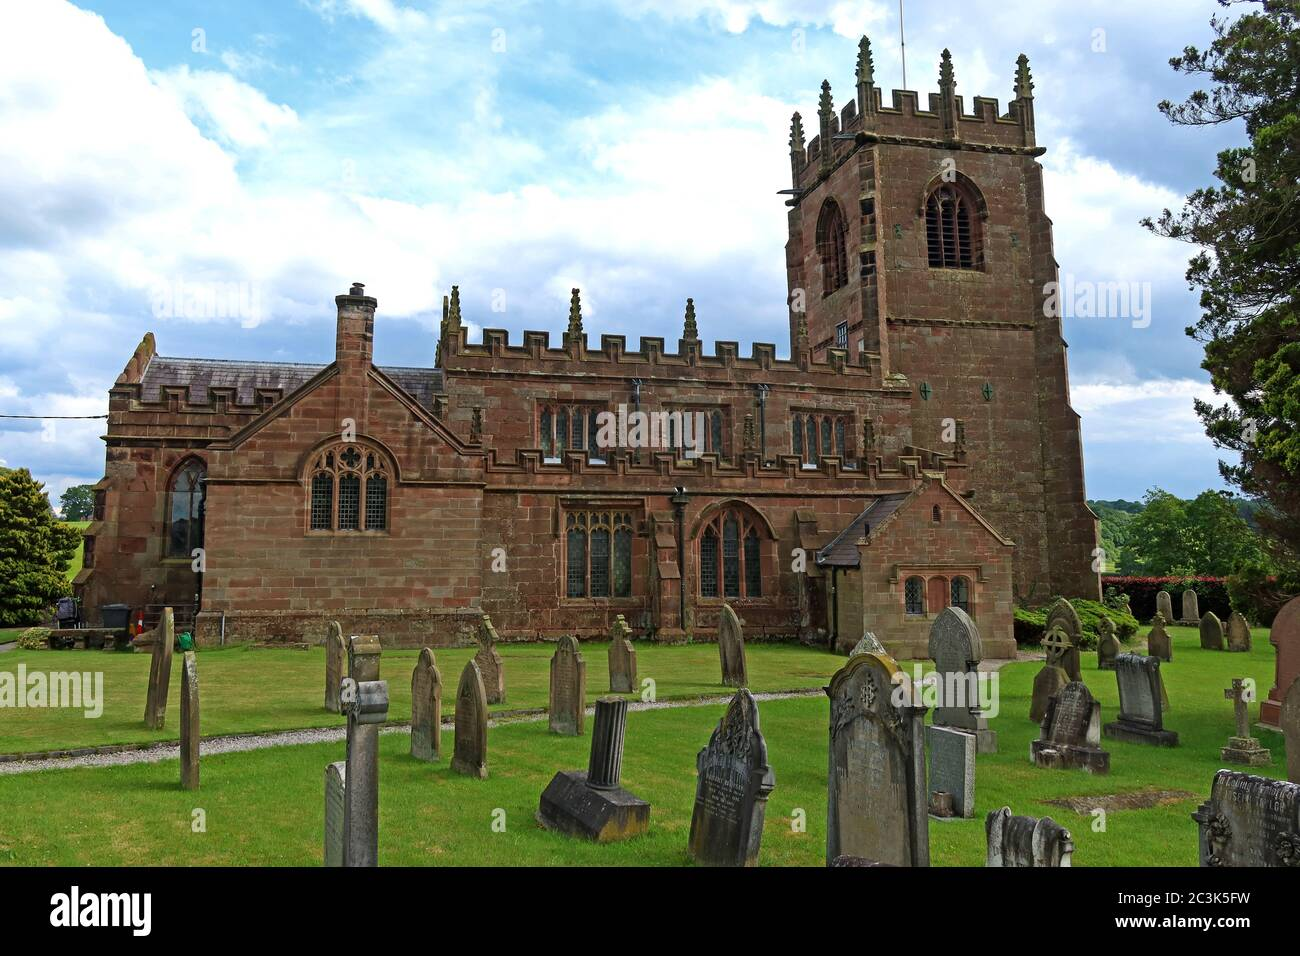 St Michael and All Angels Church, 23 Wirswall Rd, Marbury, Whitchurch, Cheshire, England, UK,  SY13 4LL Stock Photo